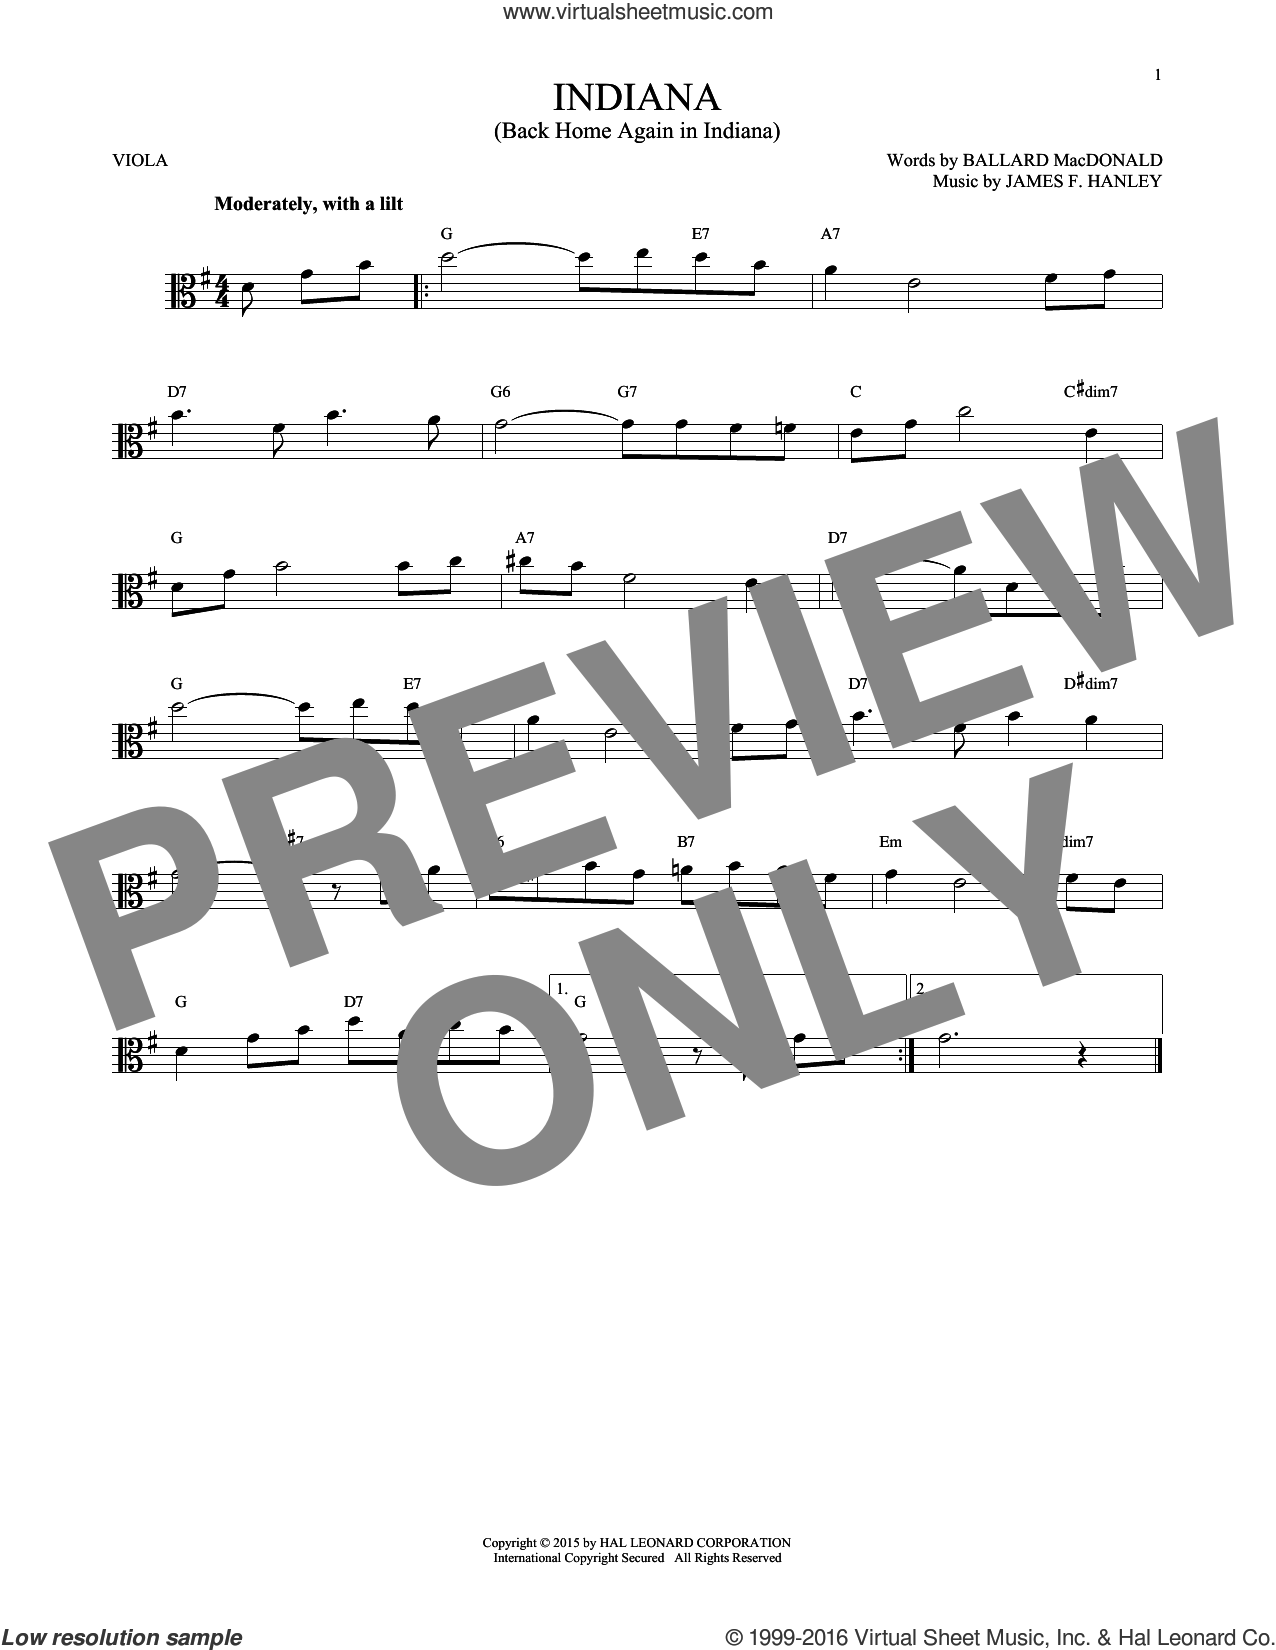 Indiana (Back Home Again In Indiana) sheet music for viola solo by Ballard MacDonald and James Hanley, intermediate skill level